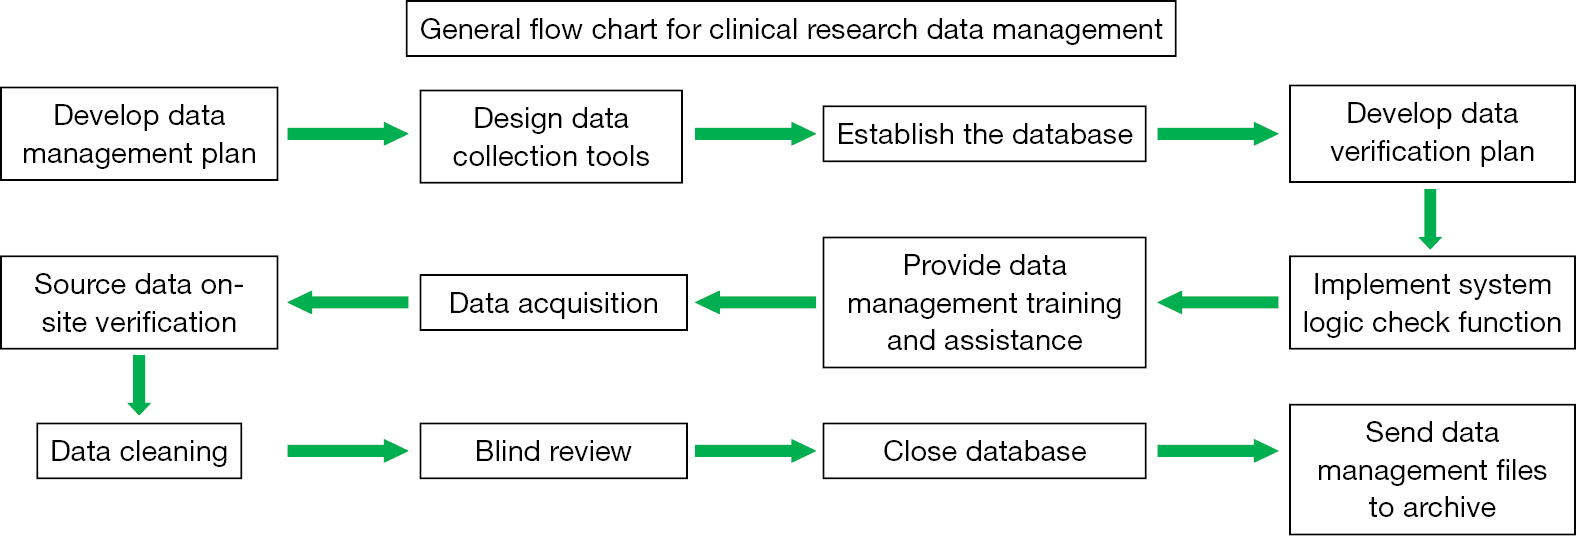 Construction of databases advances and significance in clinical databases for clinical research data management definitions and types of database and key factors for their constructionother section nvjuhfo Gallery